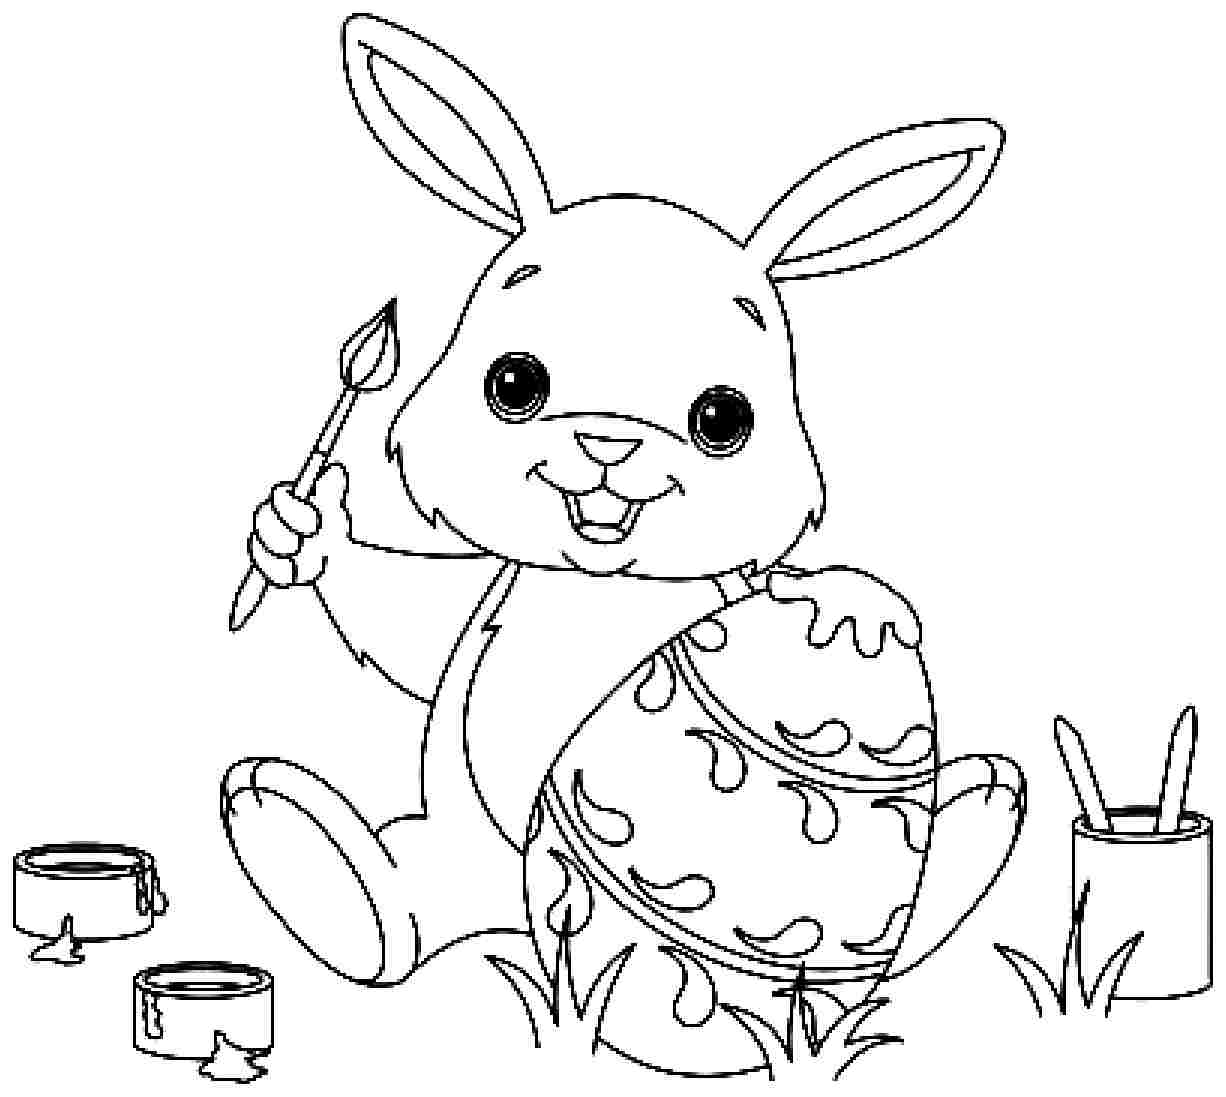 bunny printable bunny rabbit coloring pages to download and print for free bunny printable